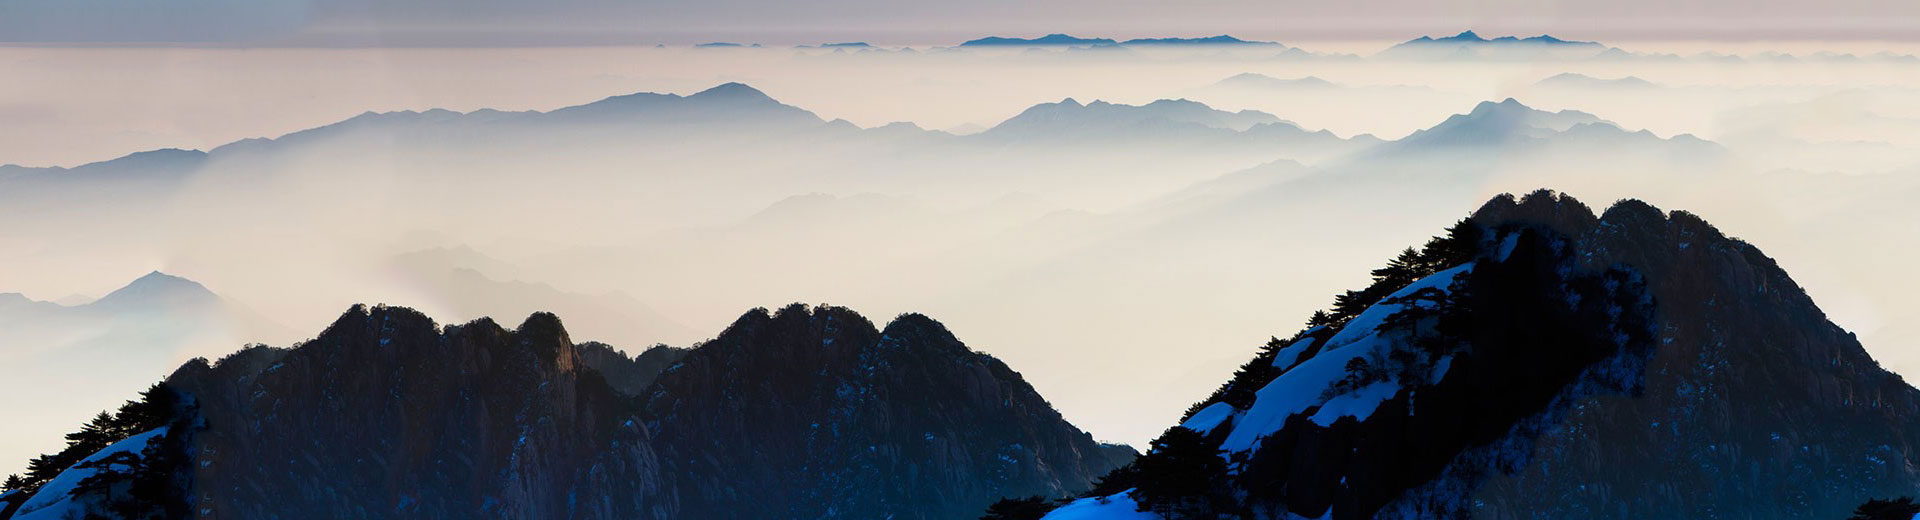 See the Magical Sea of Clouds at Mount Huangshan